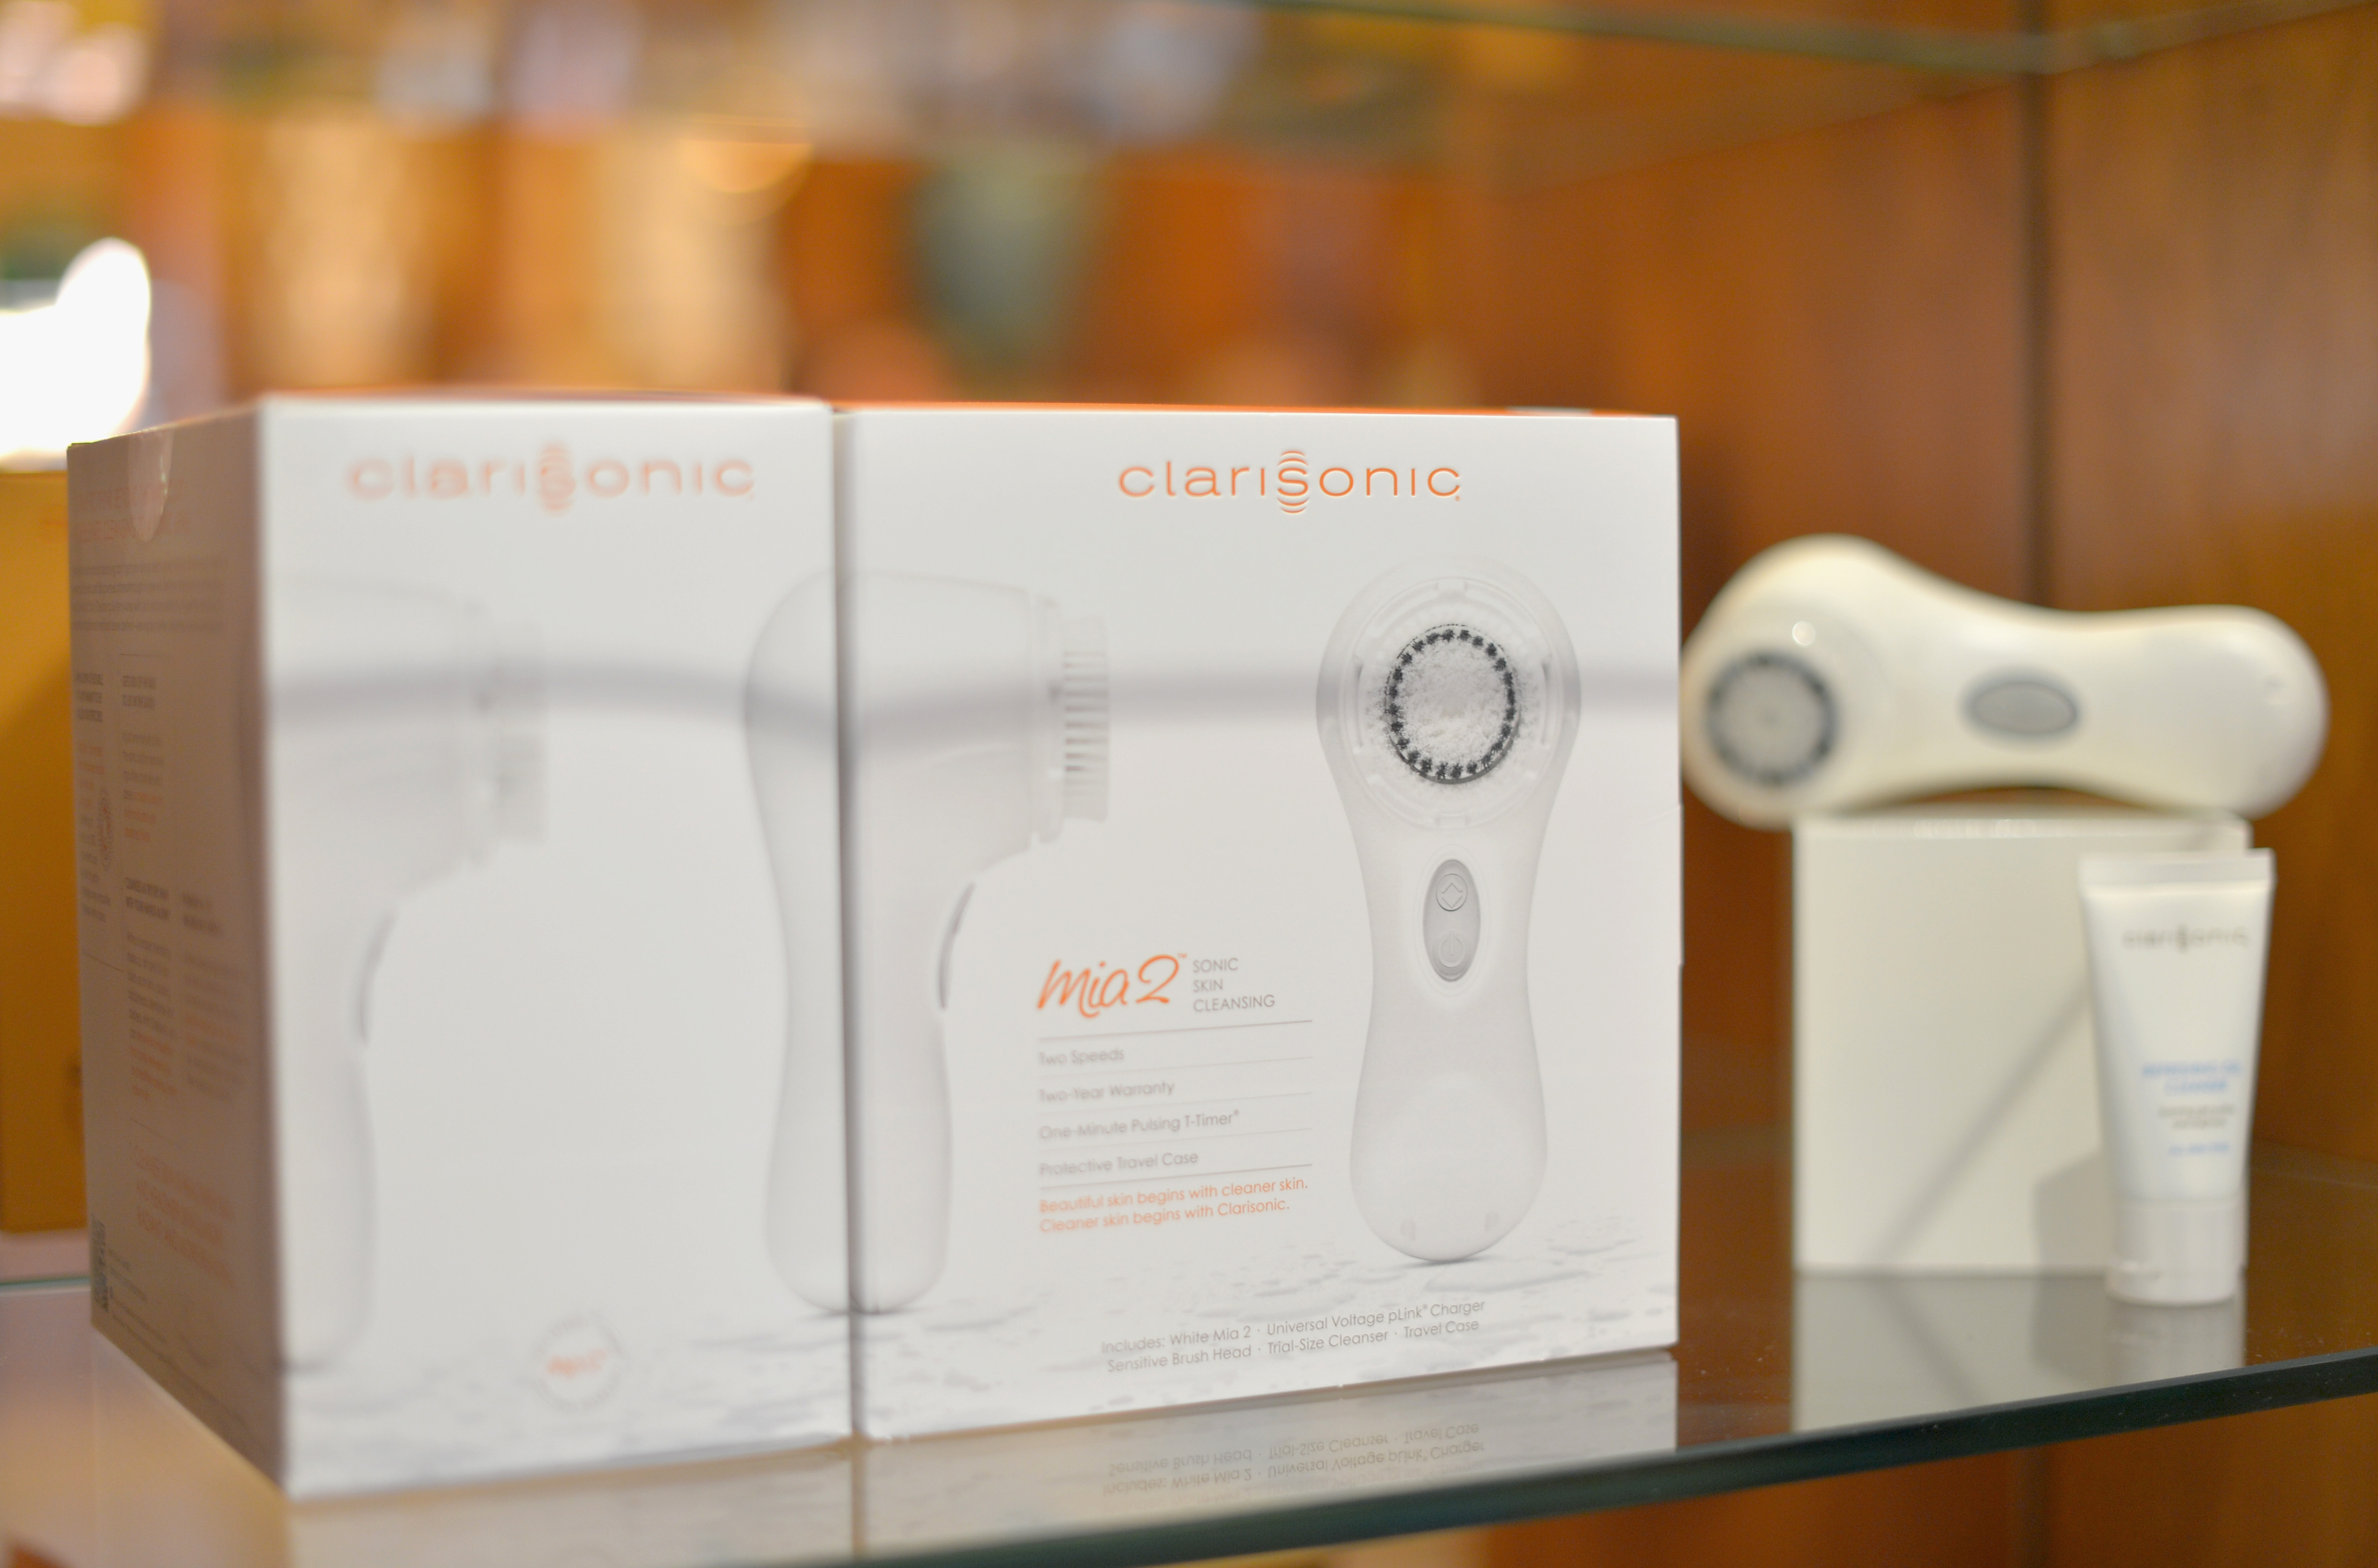 Clarisonic won t turn on after charging